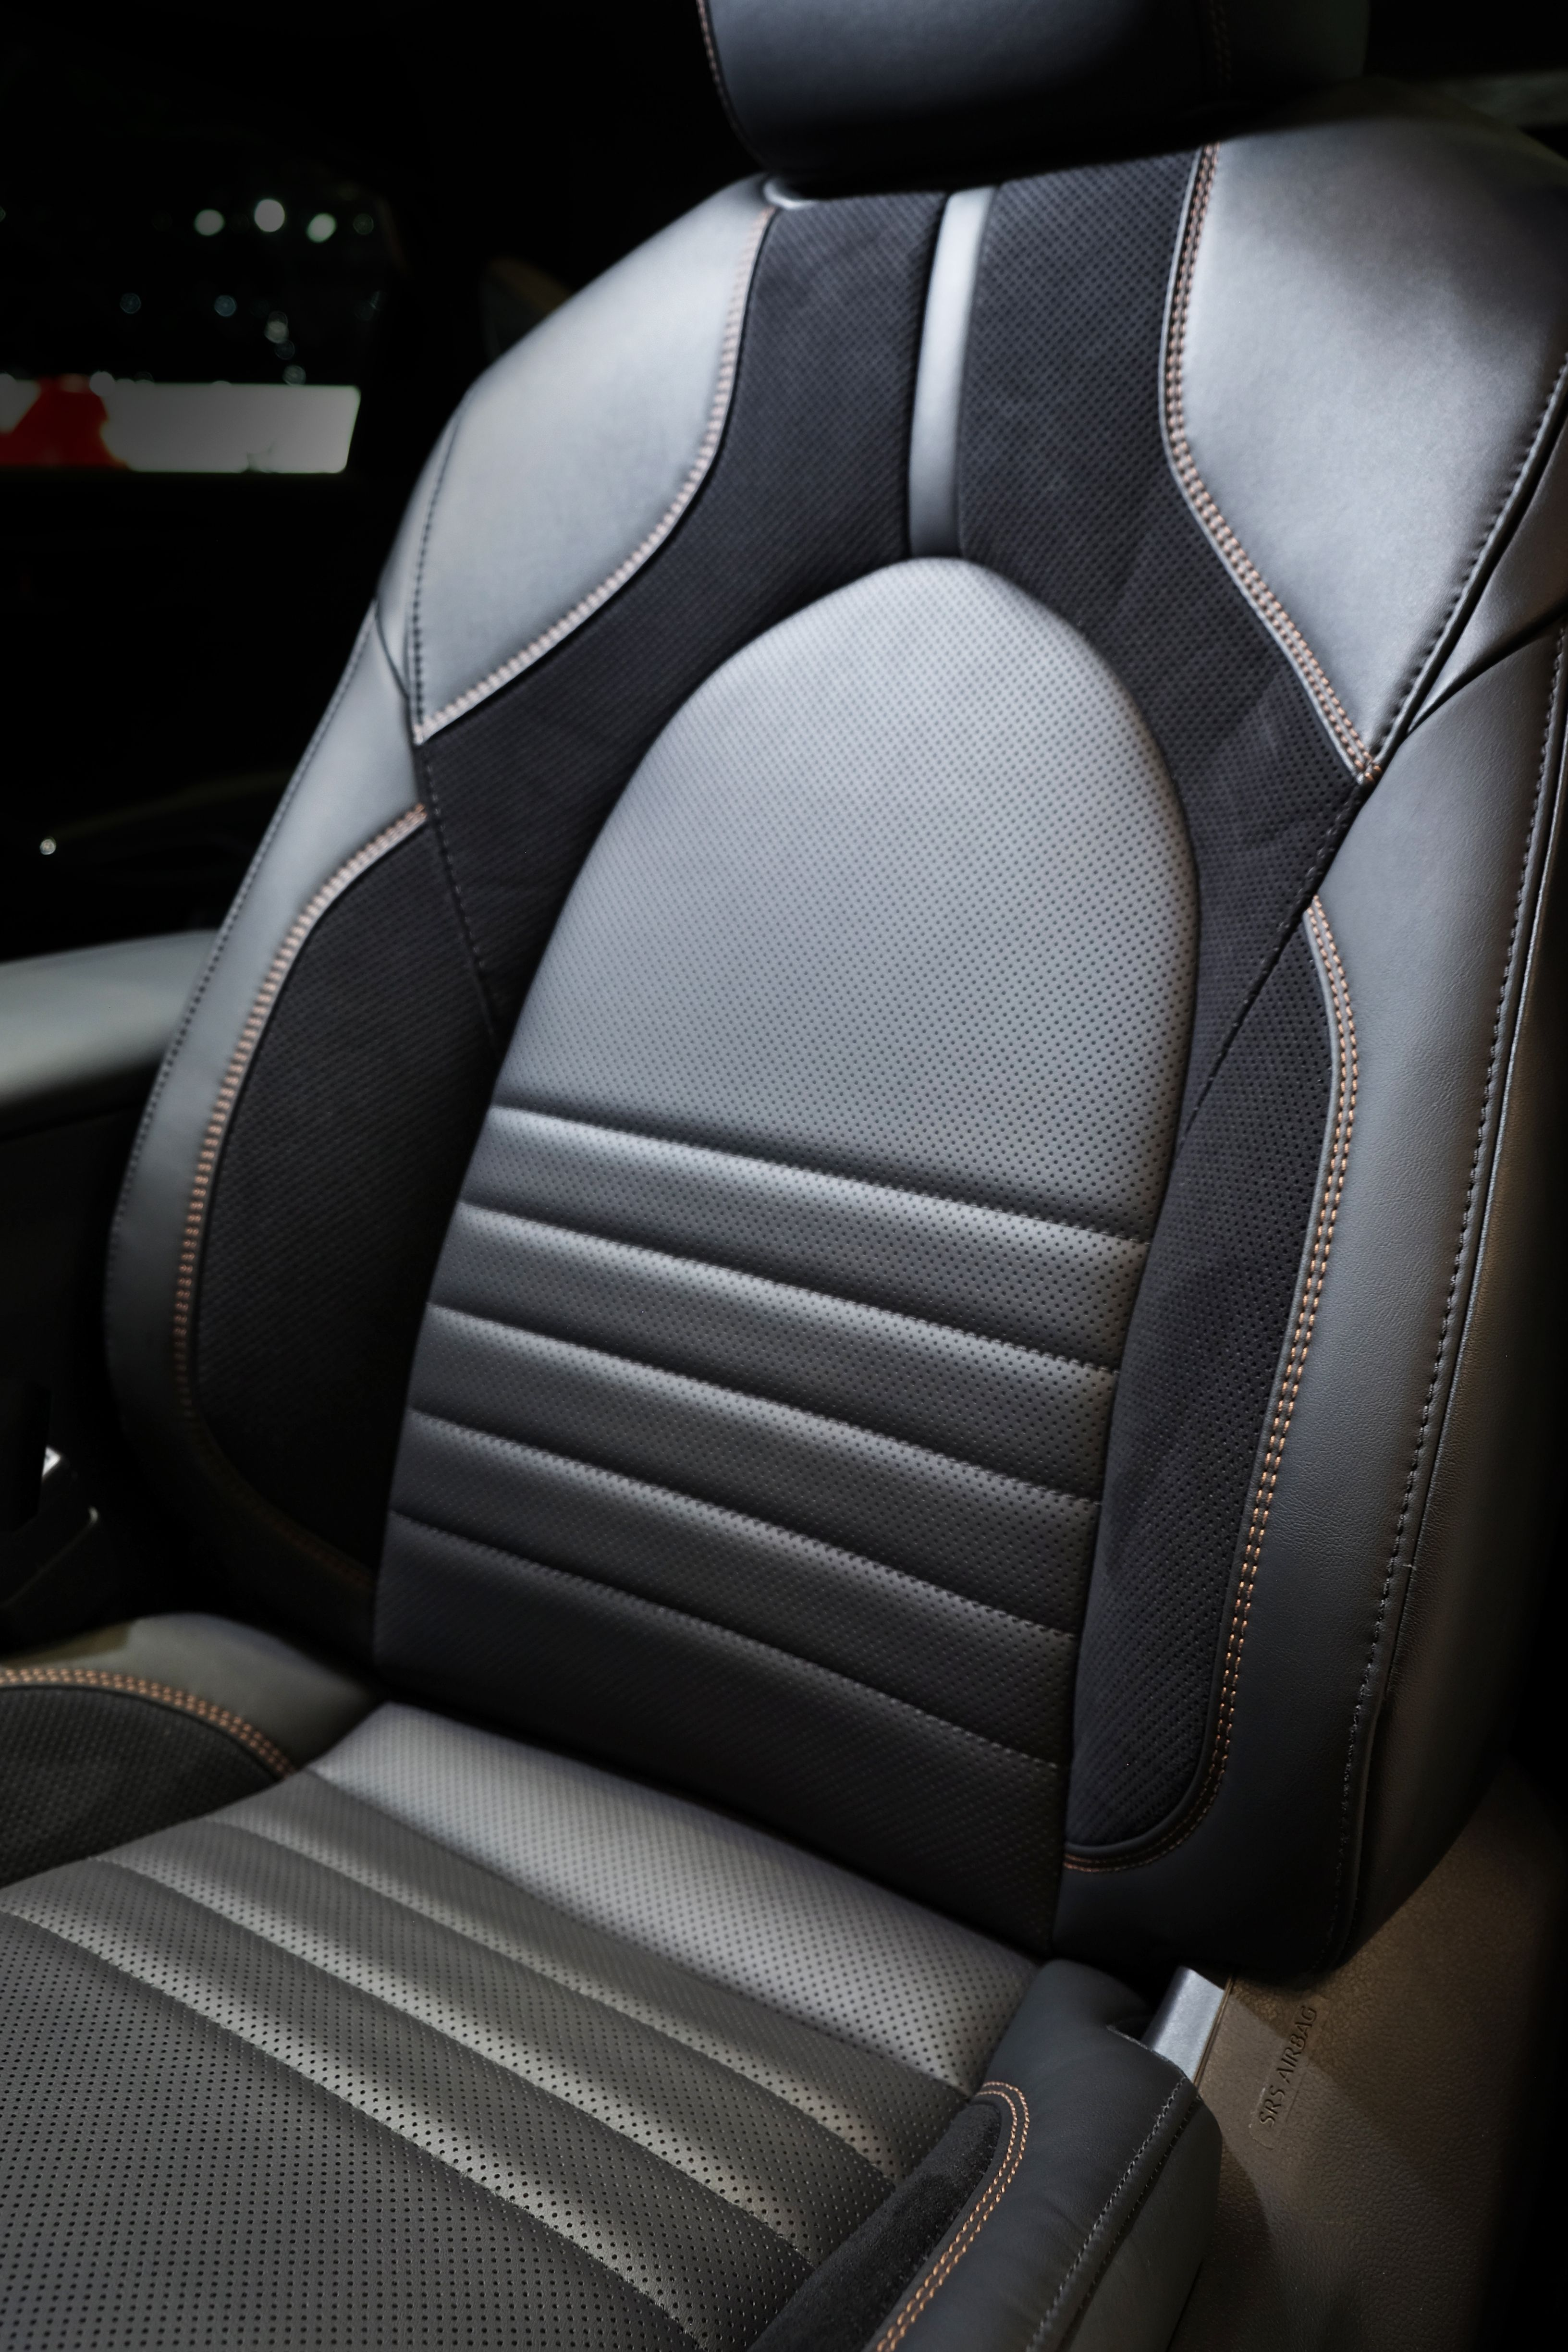 ultrasuede for automotive interiors and upholstery car upholstery truck interior car seats